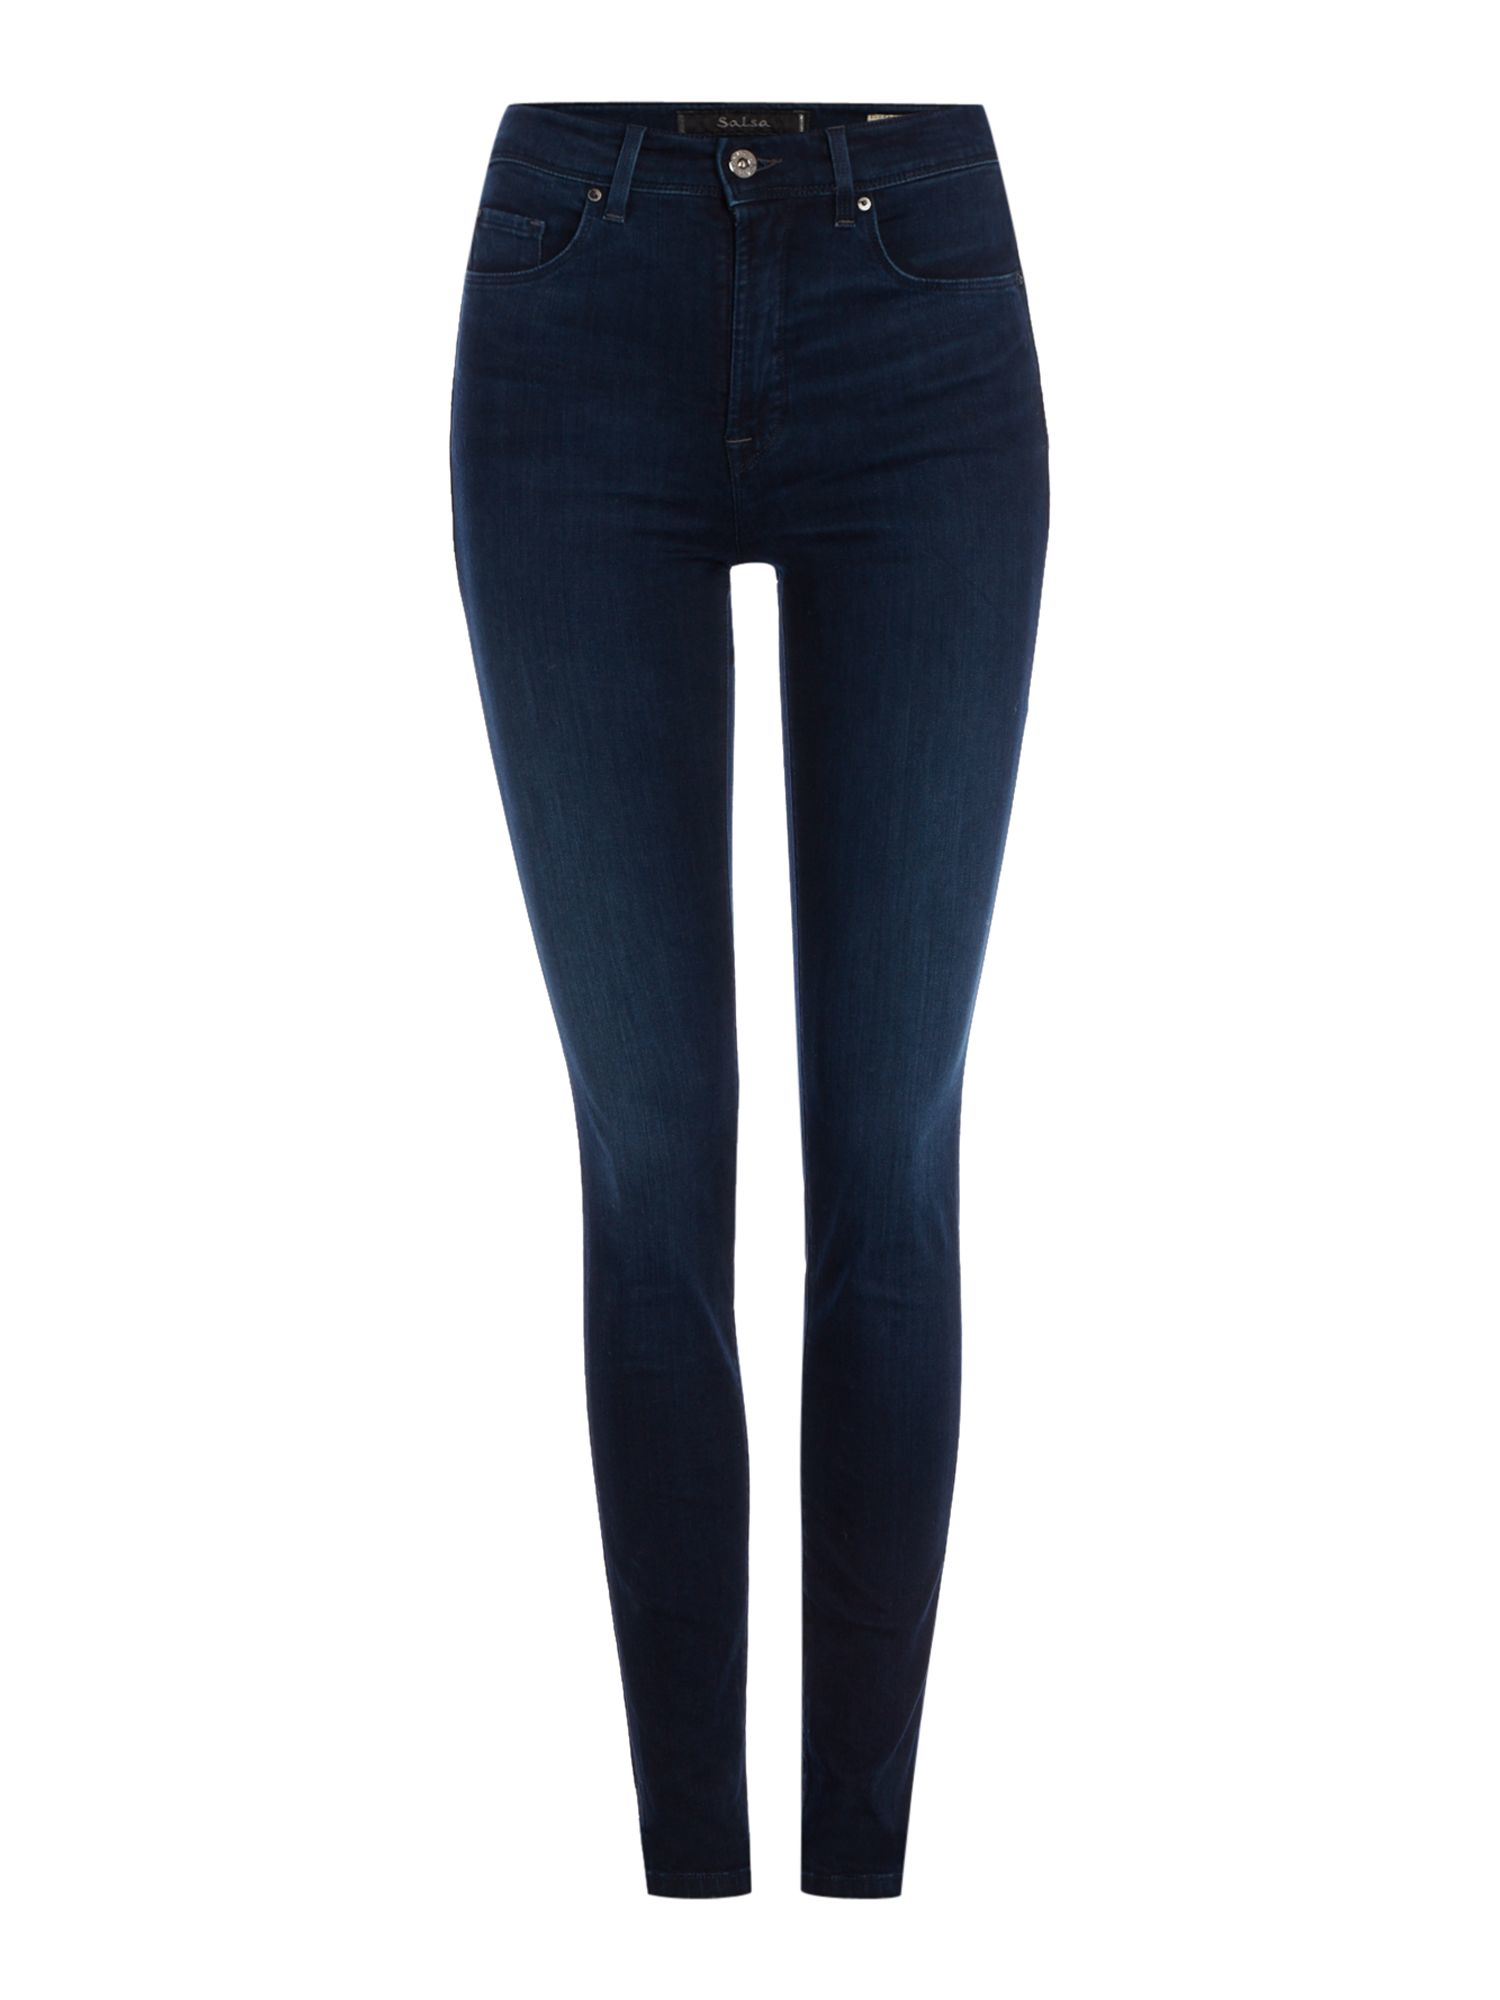 A pair of high-waist jeans, cut from a QUICK VIEW High-Rise Skinny Jeans A pair of skinny jeans in an indigo QUICK VIEW High-Waist Skinny Jeans A pair of stretch-denim jeans featuring a skinny QUICK VIEW High-Rise Ripped Knee Skinny Jeans.